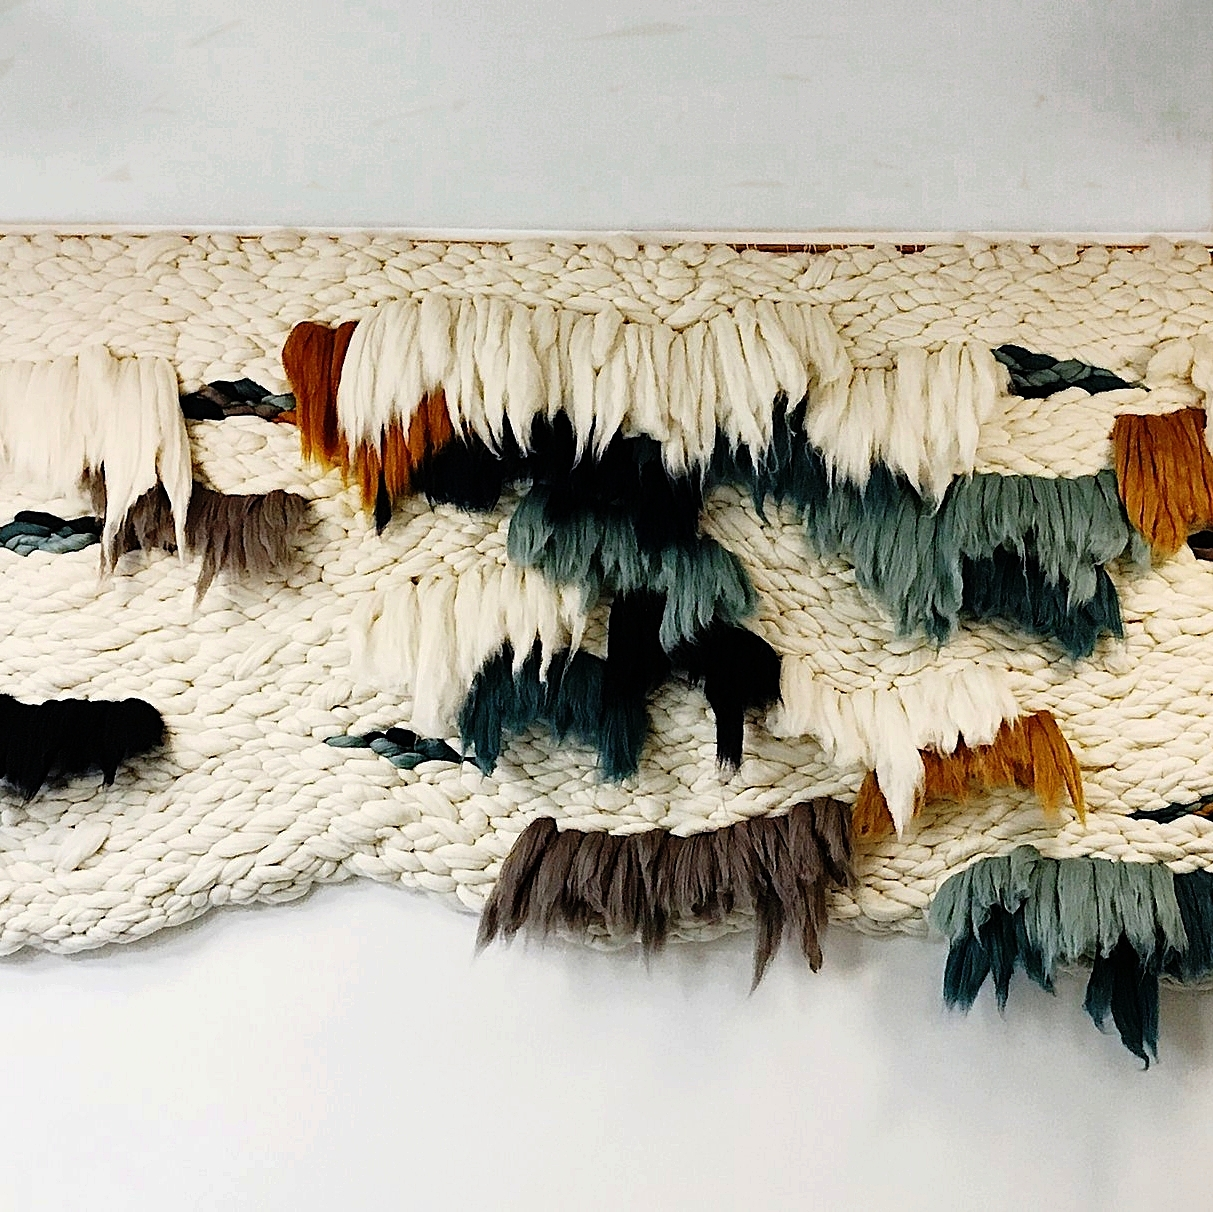 Meghan Bogden Shimek - Meghan Bogden Shimek is a fiber artist living and working in Oakland, California. Meghan is inspired by loss, movement, healing and the acknowledgment of uncomfortable feelings. She uses organic movements to intertwine raw fibers to create abstract and textural wall hangings and sculptural objects....